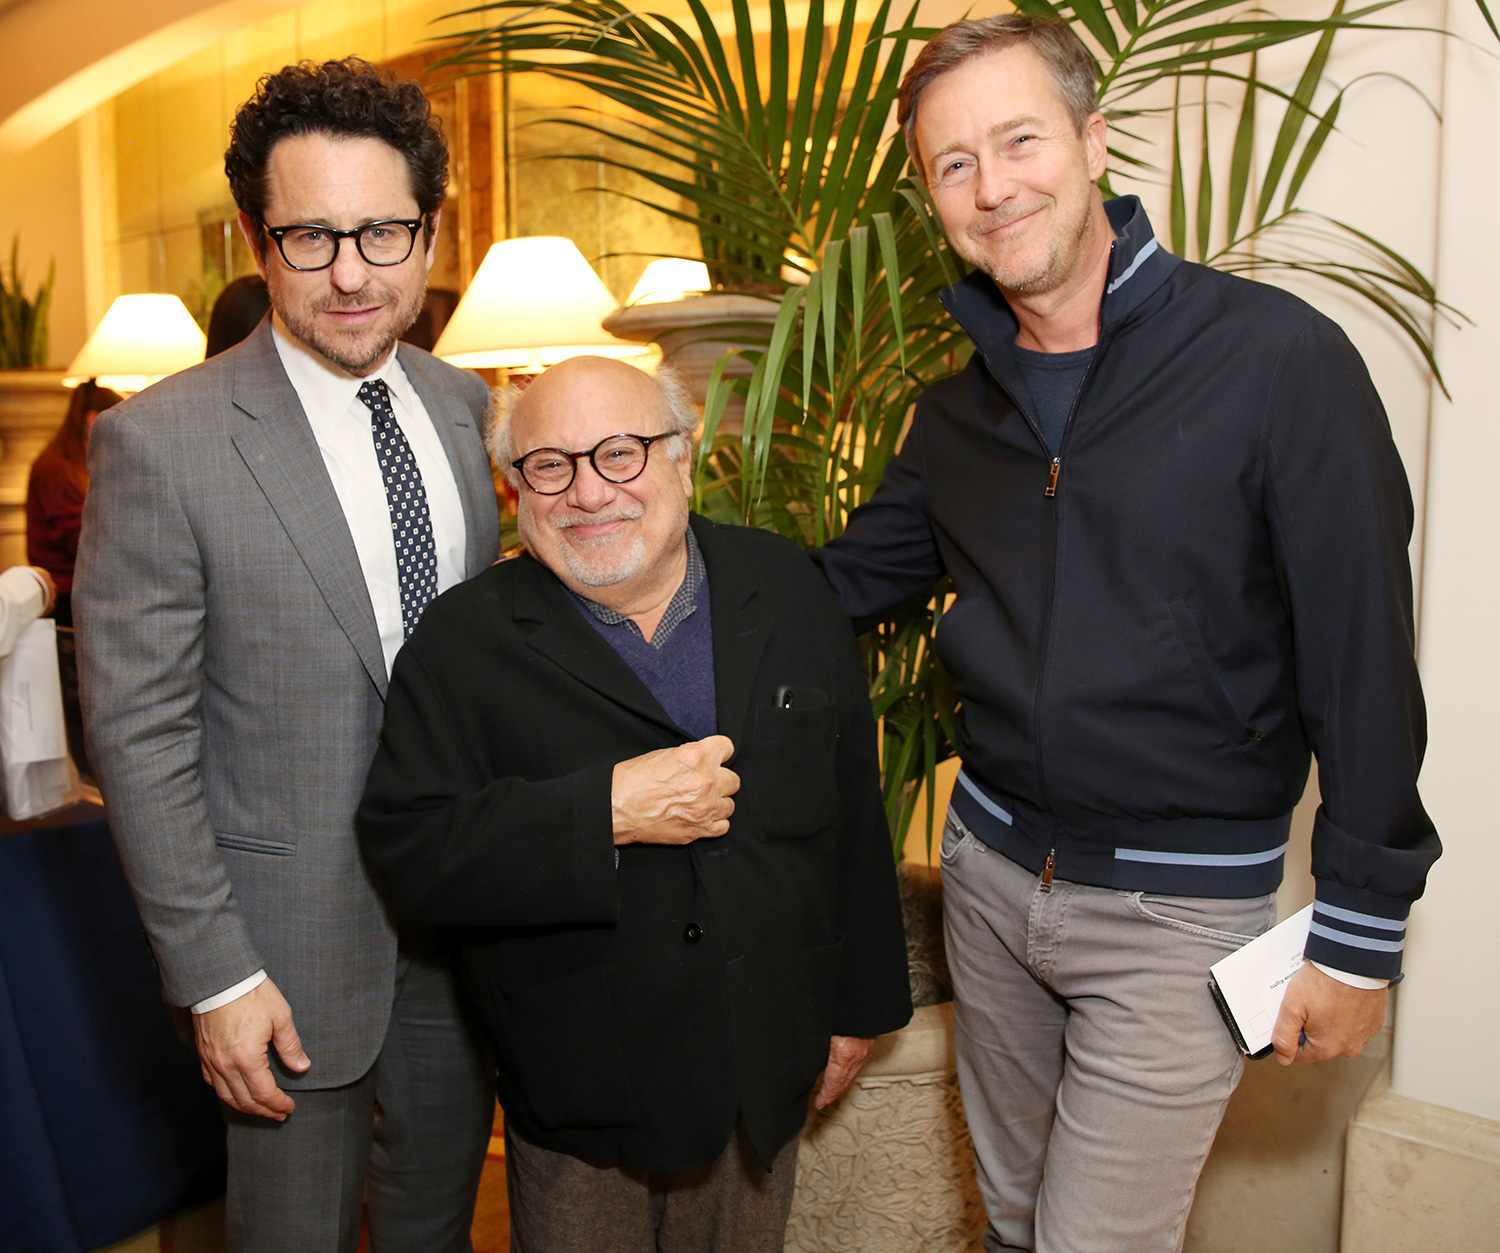 J.J. Abrams, Danny DeVito and Edward Norton attend The Center for Reproductive Rights 2020 Los Angeles Benefit on February 27, 2020 in Beverly Hills, California